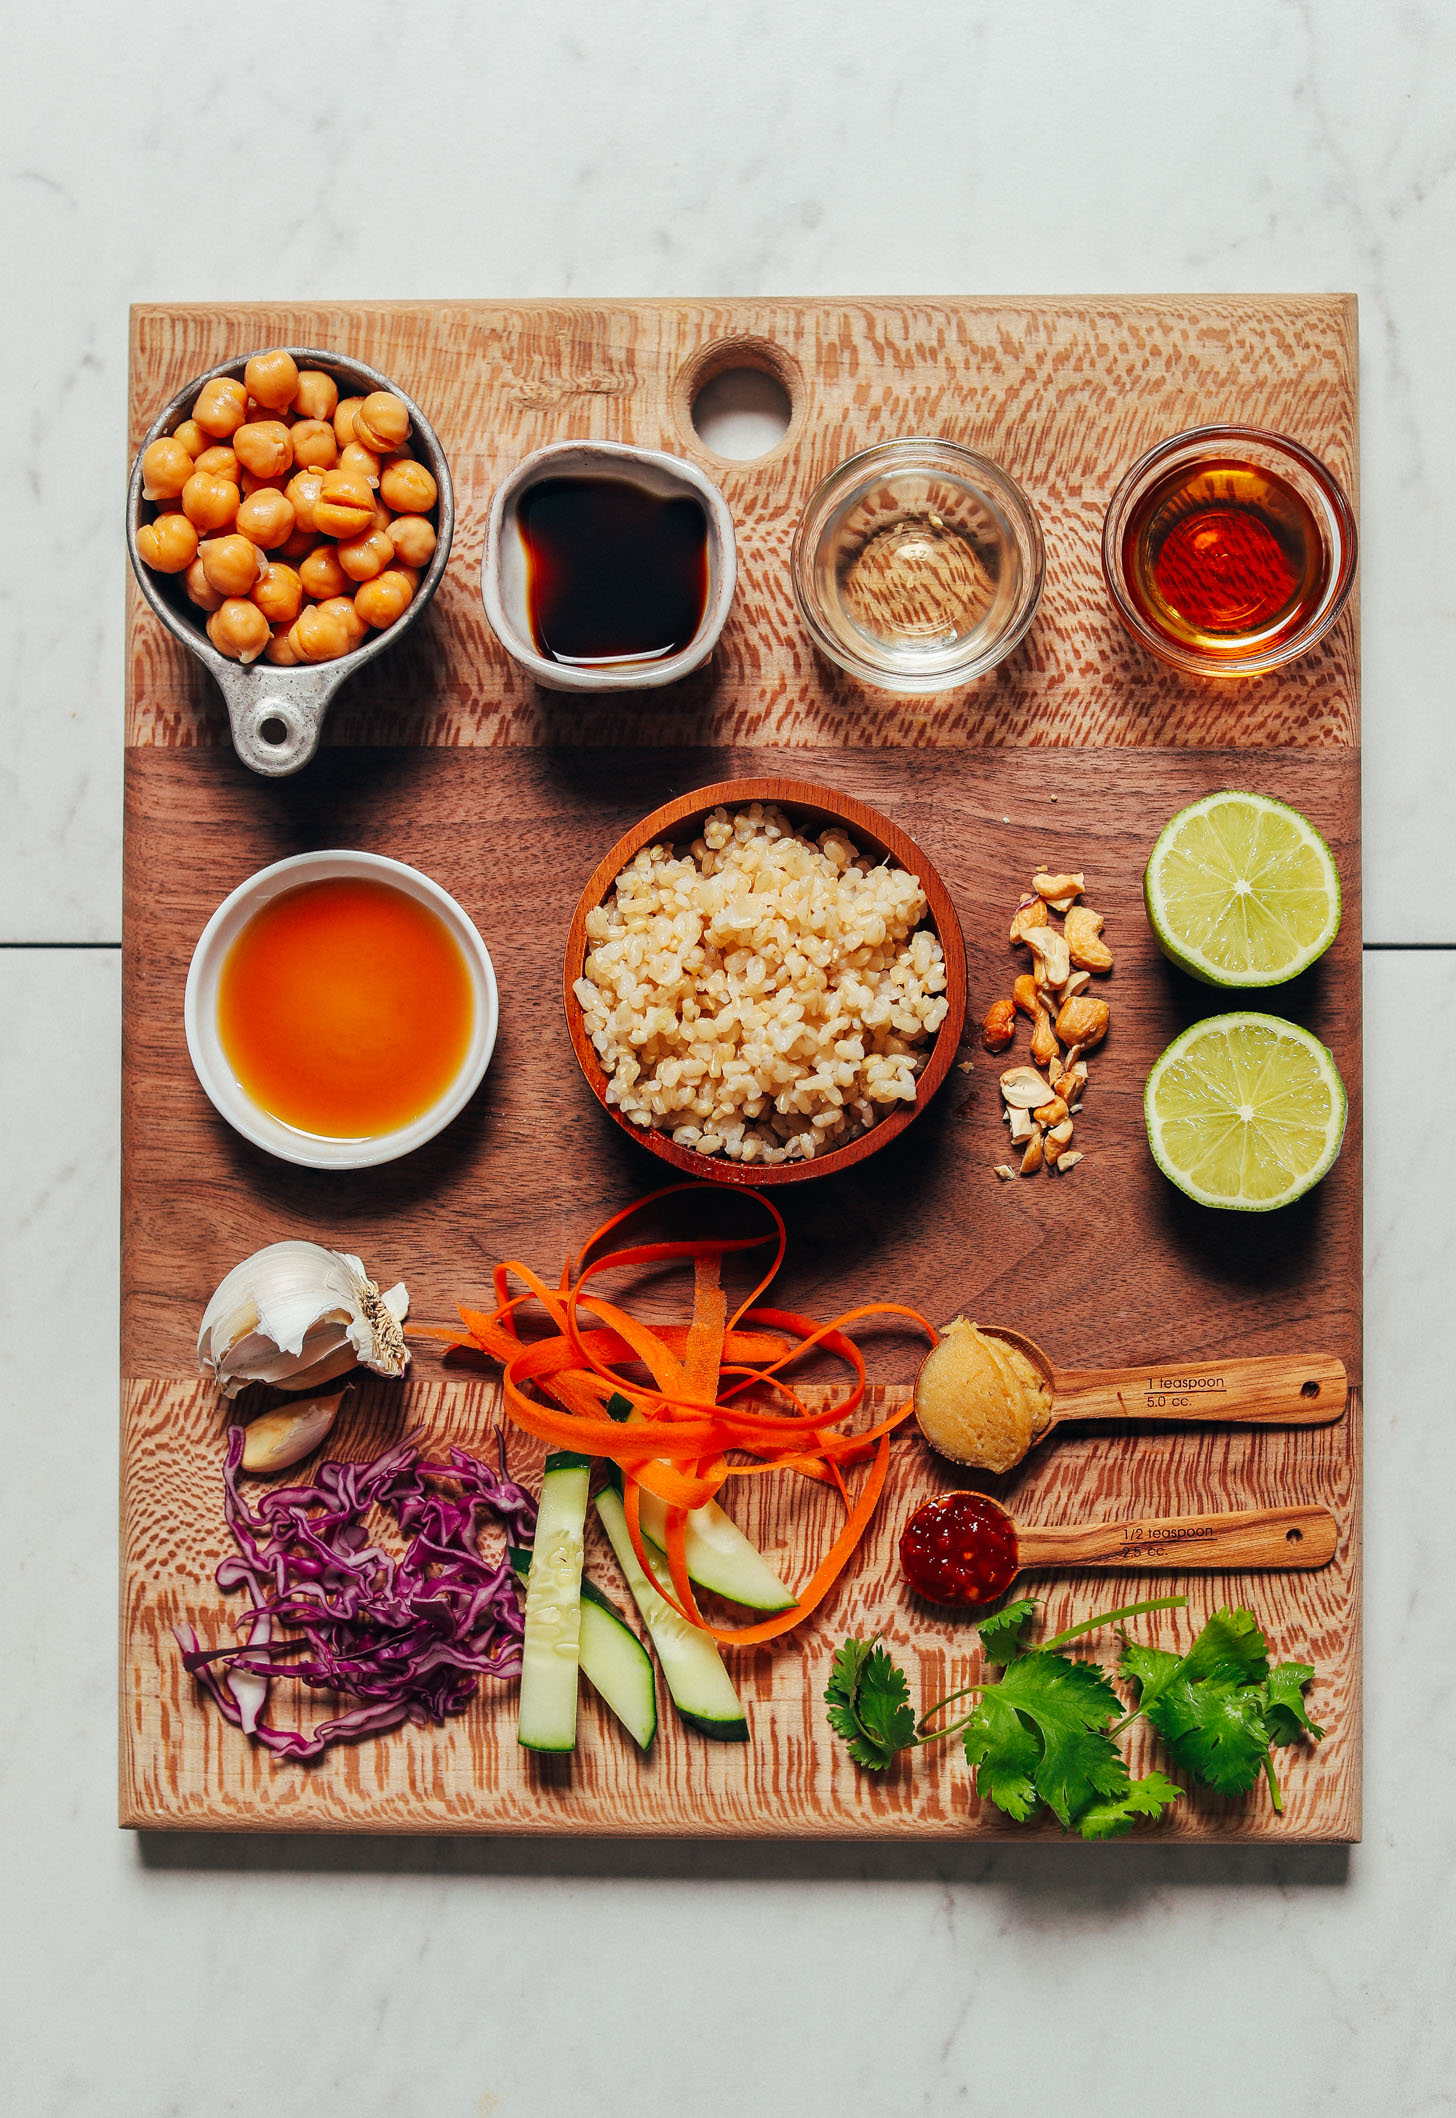 Wood cutting board with ingredients for making our Crispy Miso Chickpea Bowls with Garlic Sesame Dressing recipe